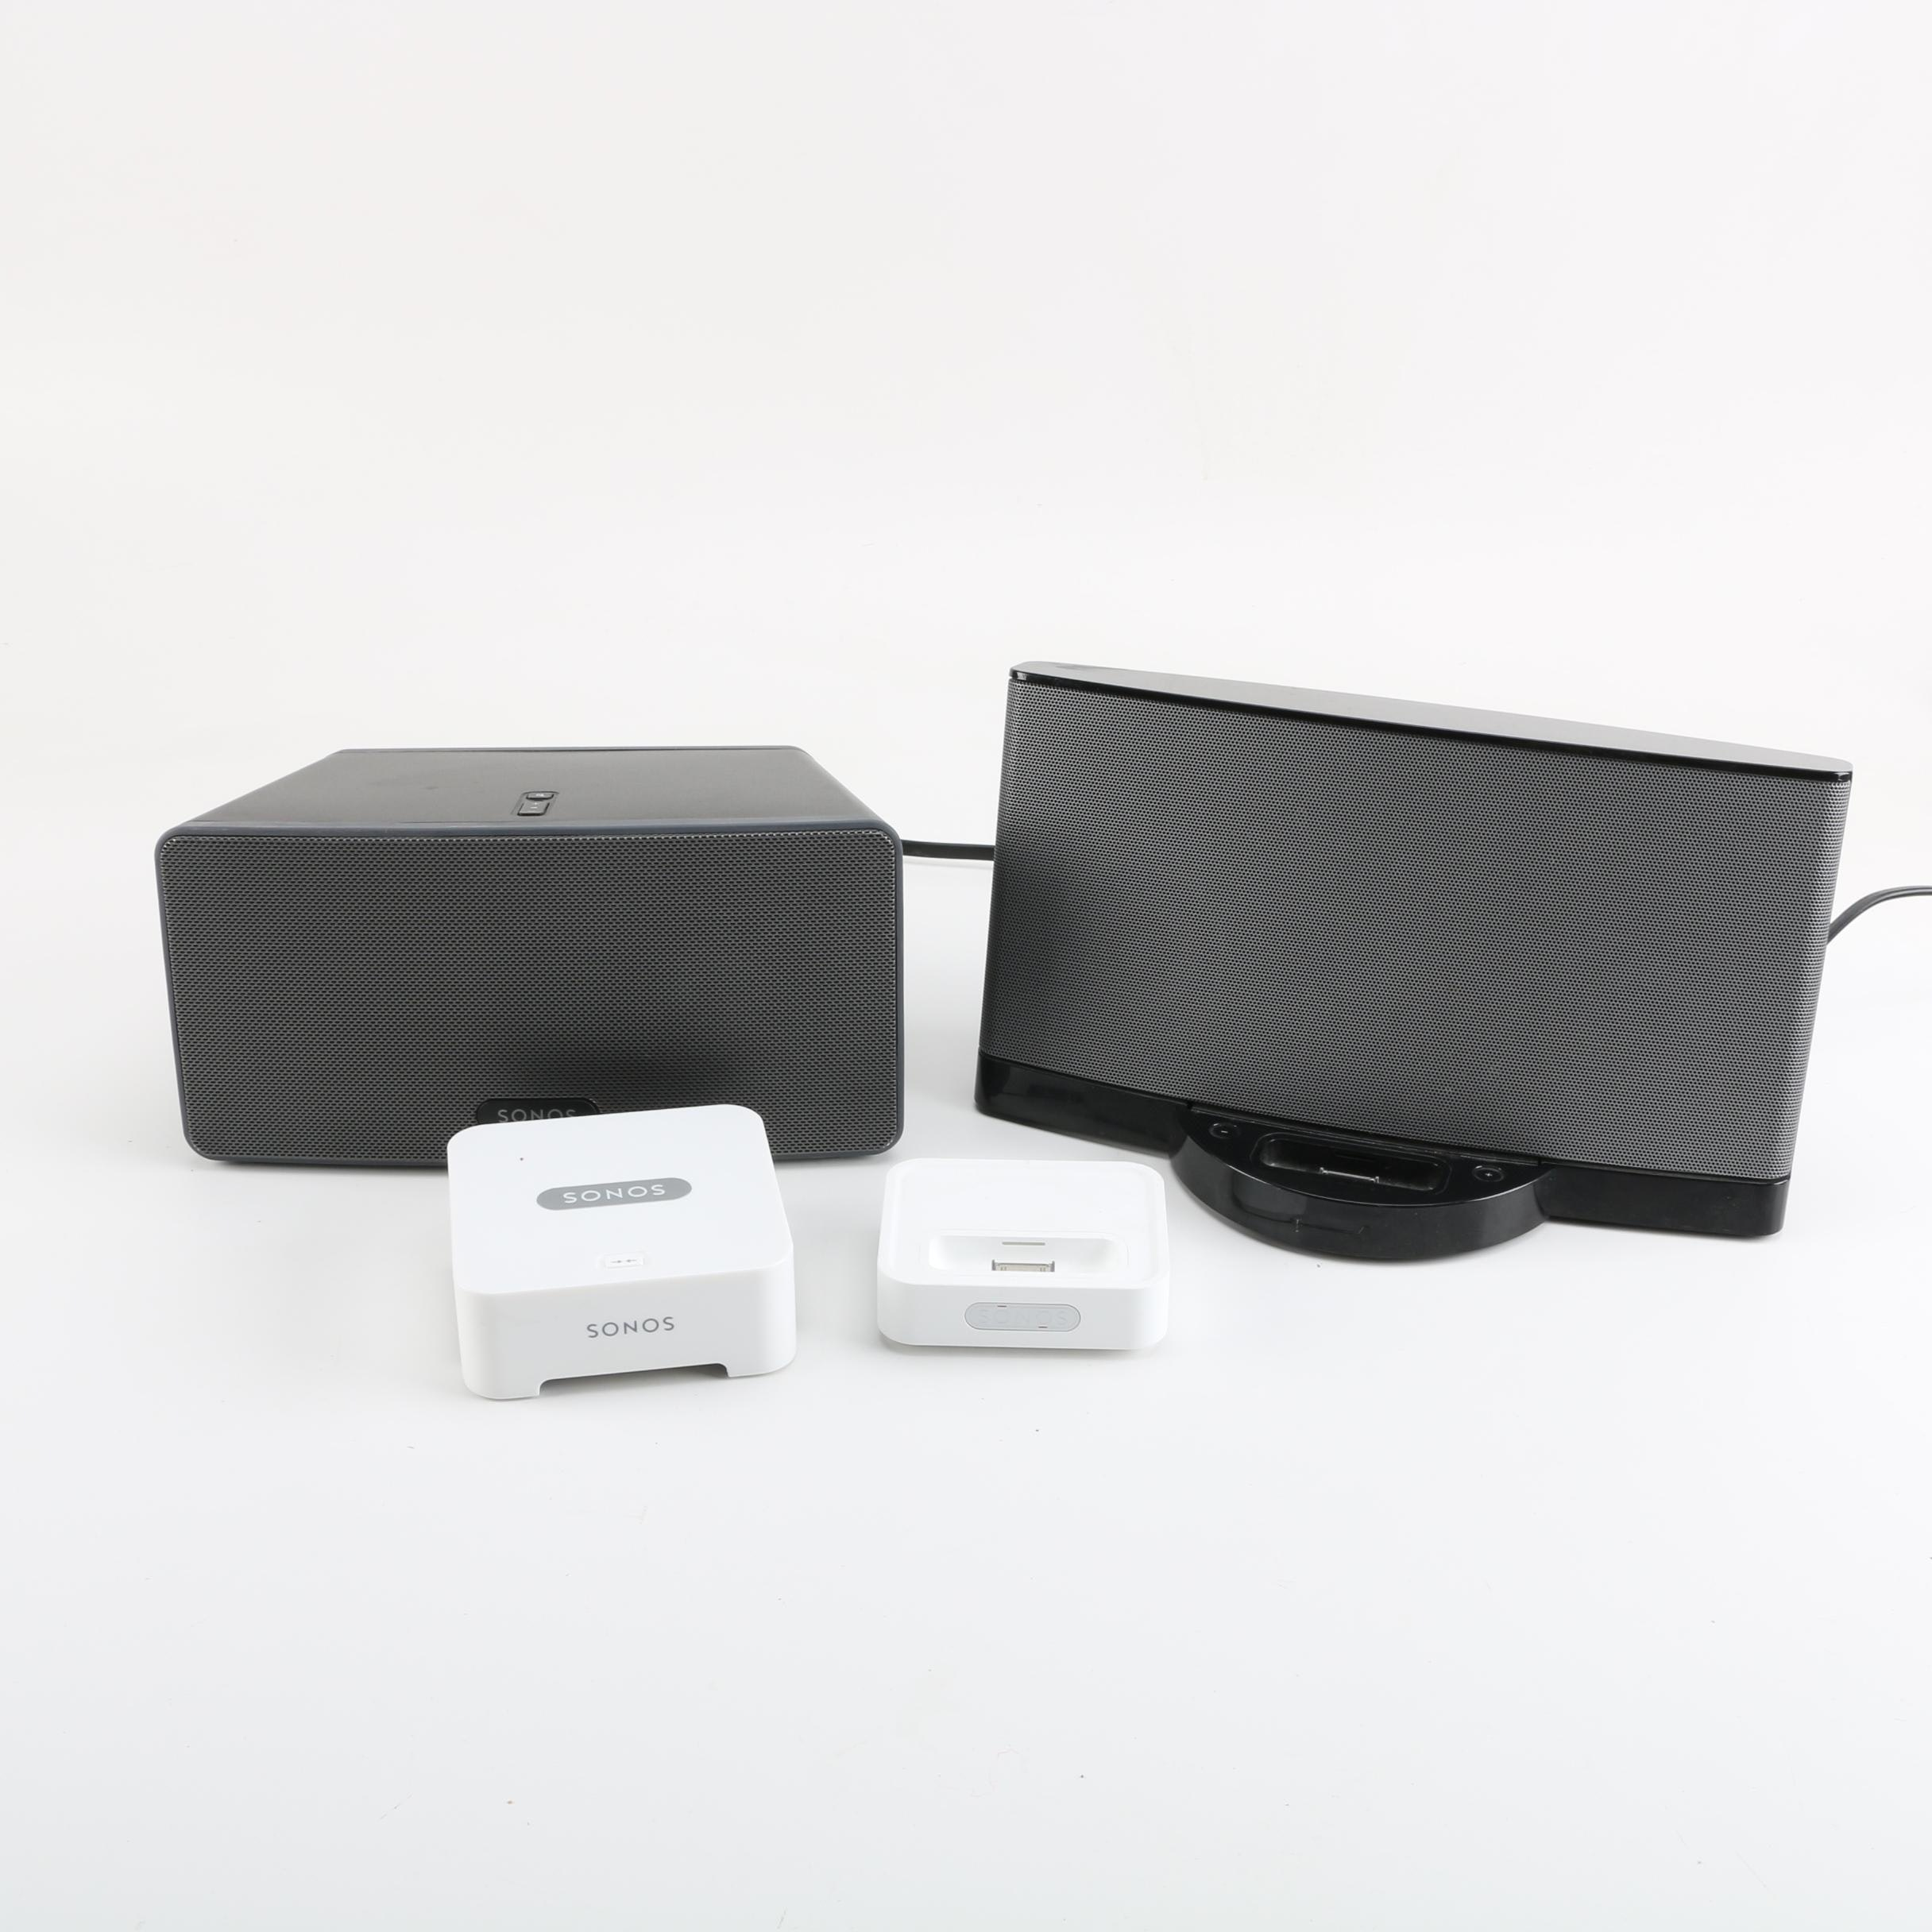 Sonos Wireless iPod System and Bose SoundDock Series 2